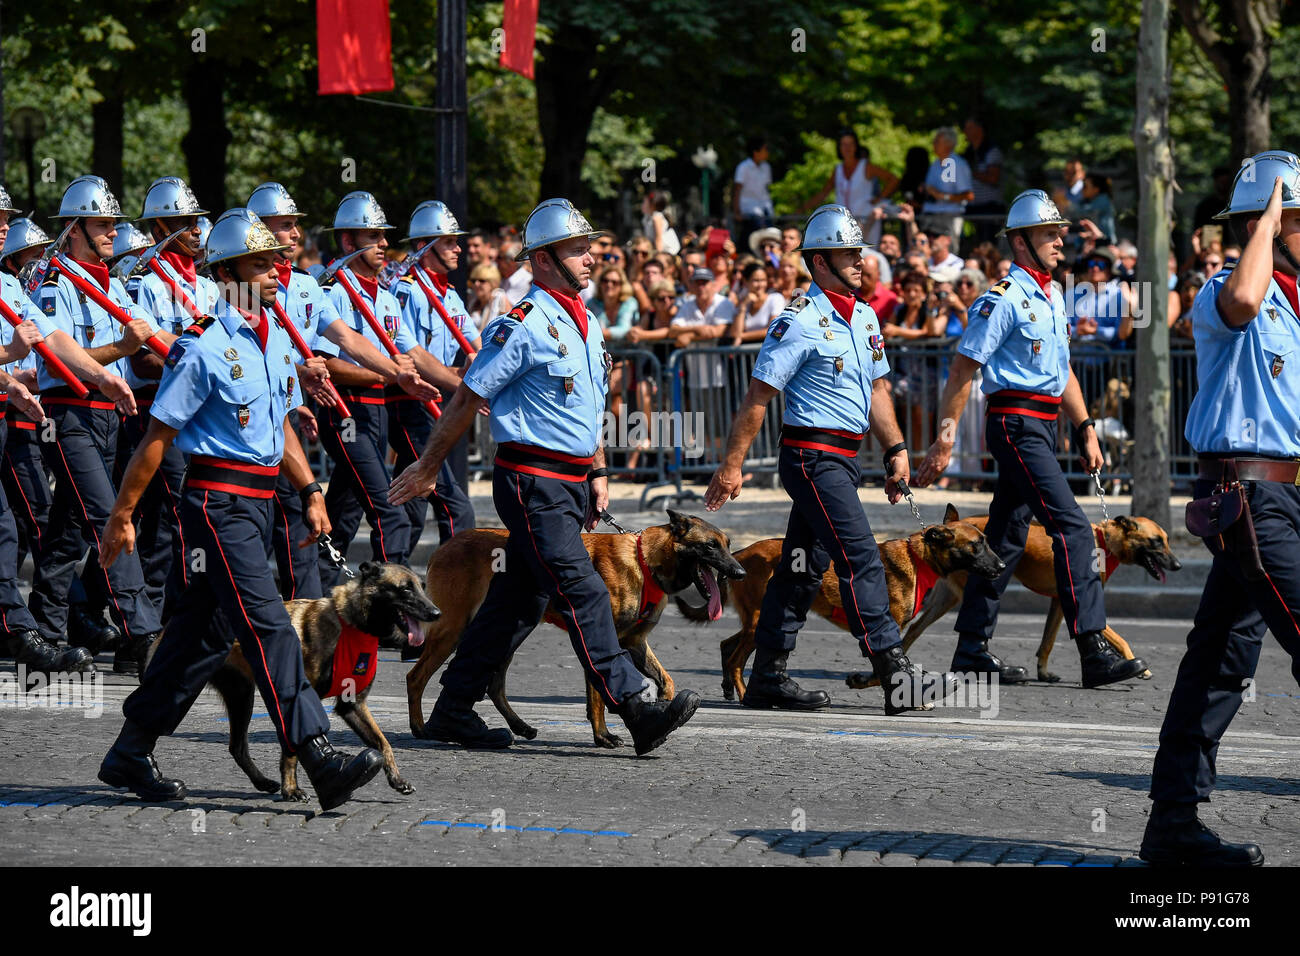 Paris, France. 14th July, 2018. Firefighters march during the annual Bastille Day military parade on the Champs-Elysees Avenue in Paris, France, on July 14, 2018. Credit: Chen Yichen/Xinhua/Alamy Live News Stock Photo